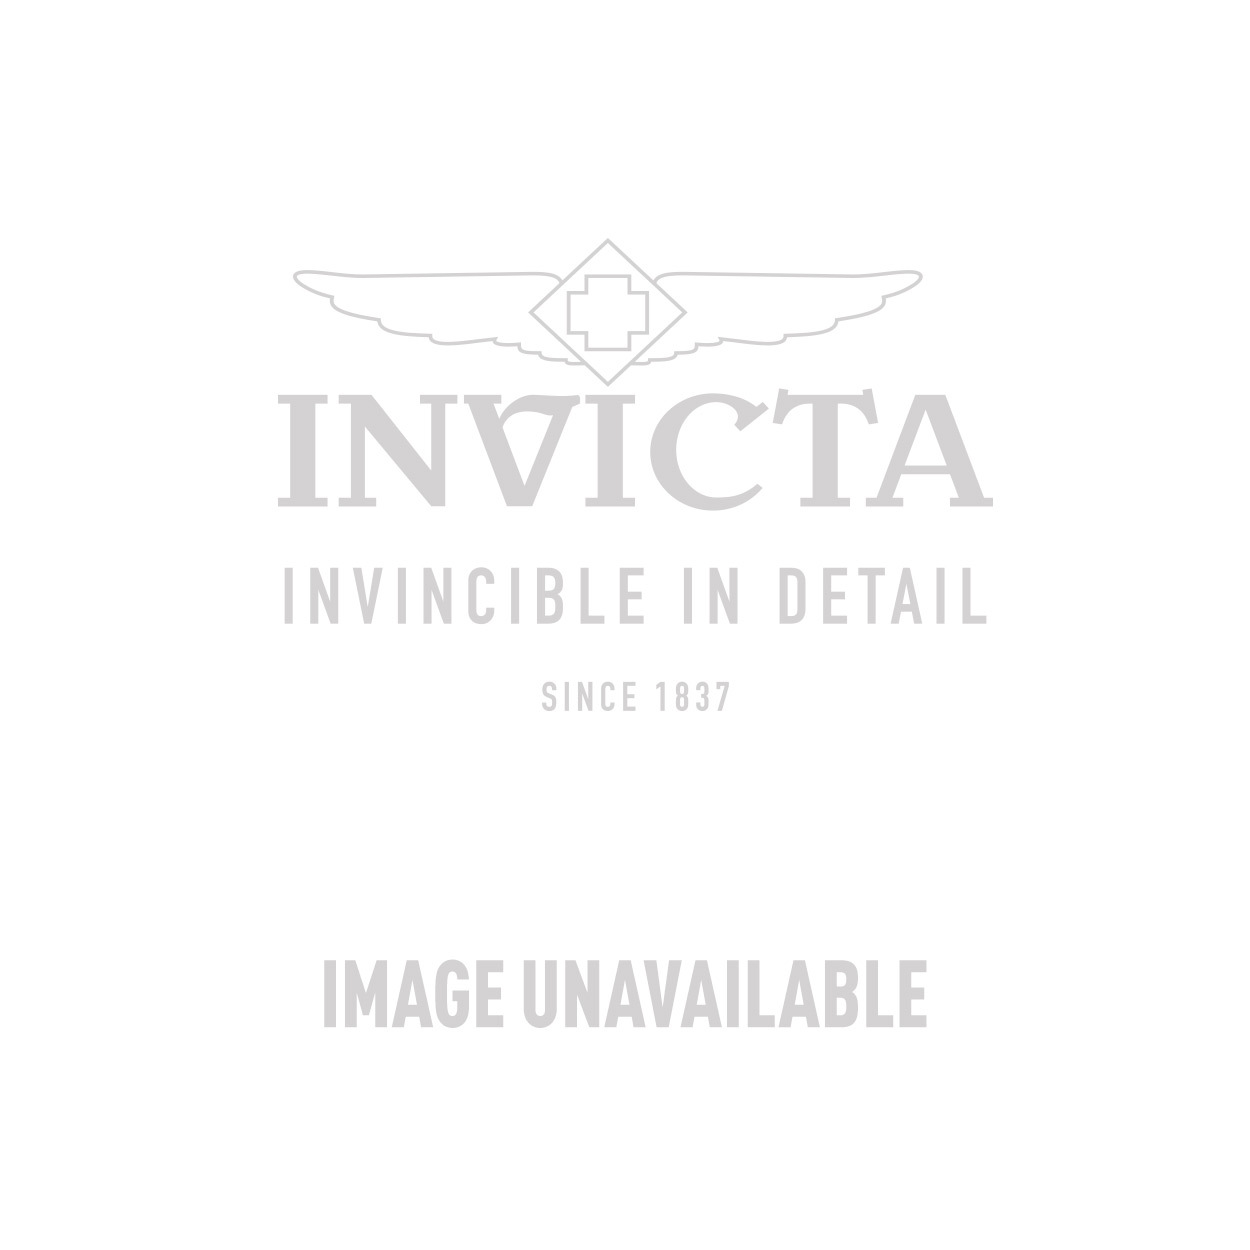 Invicta I-Force Quartz Watch - Stainless Steel case with Black tone Rifle band - Model 1512